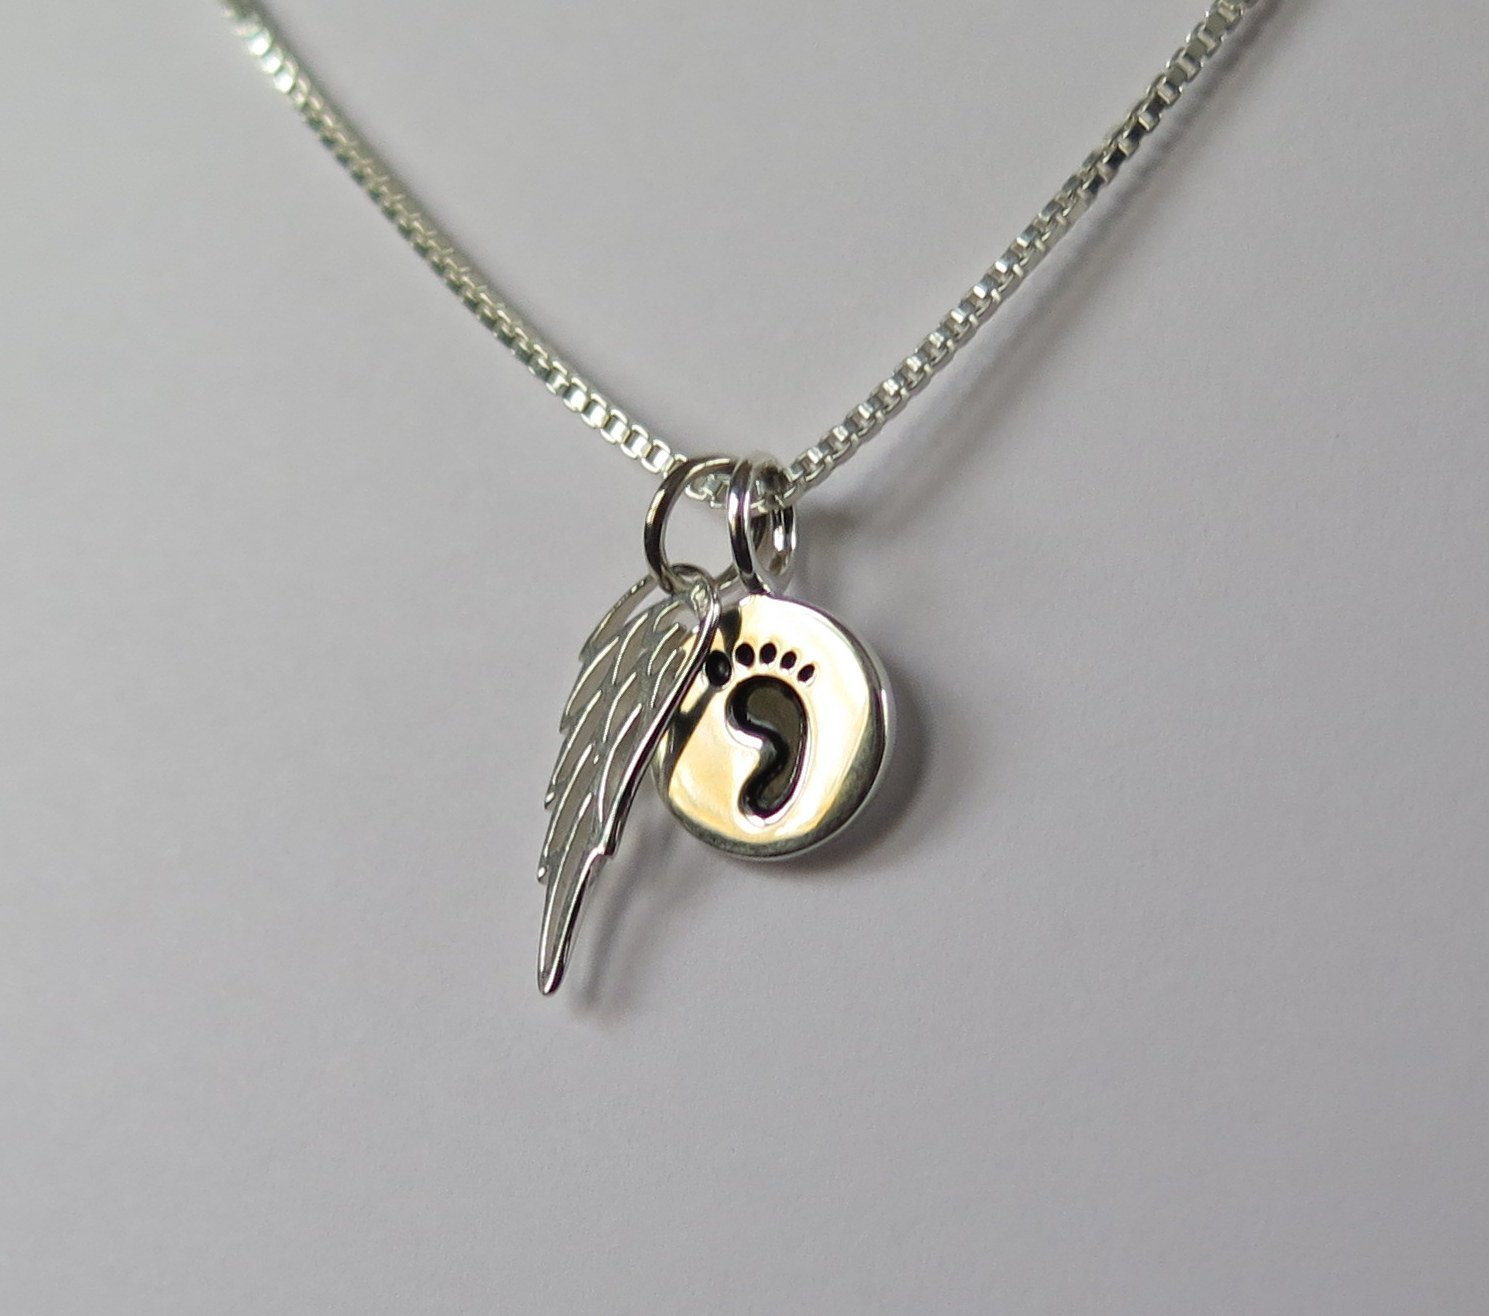 il wings footprints silver remembrance necklace loss jewelry miscarriage angel sterling erml fullxfull baby listing pregnancy